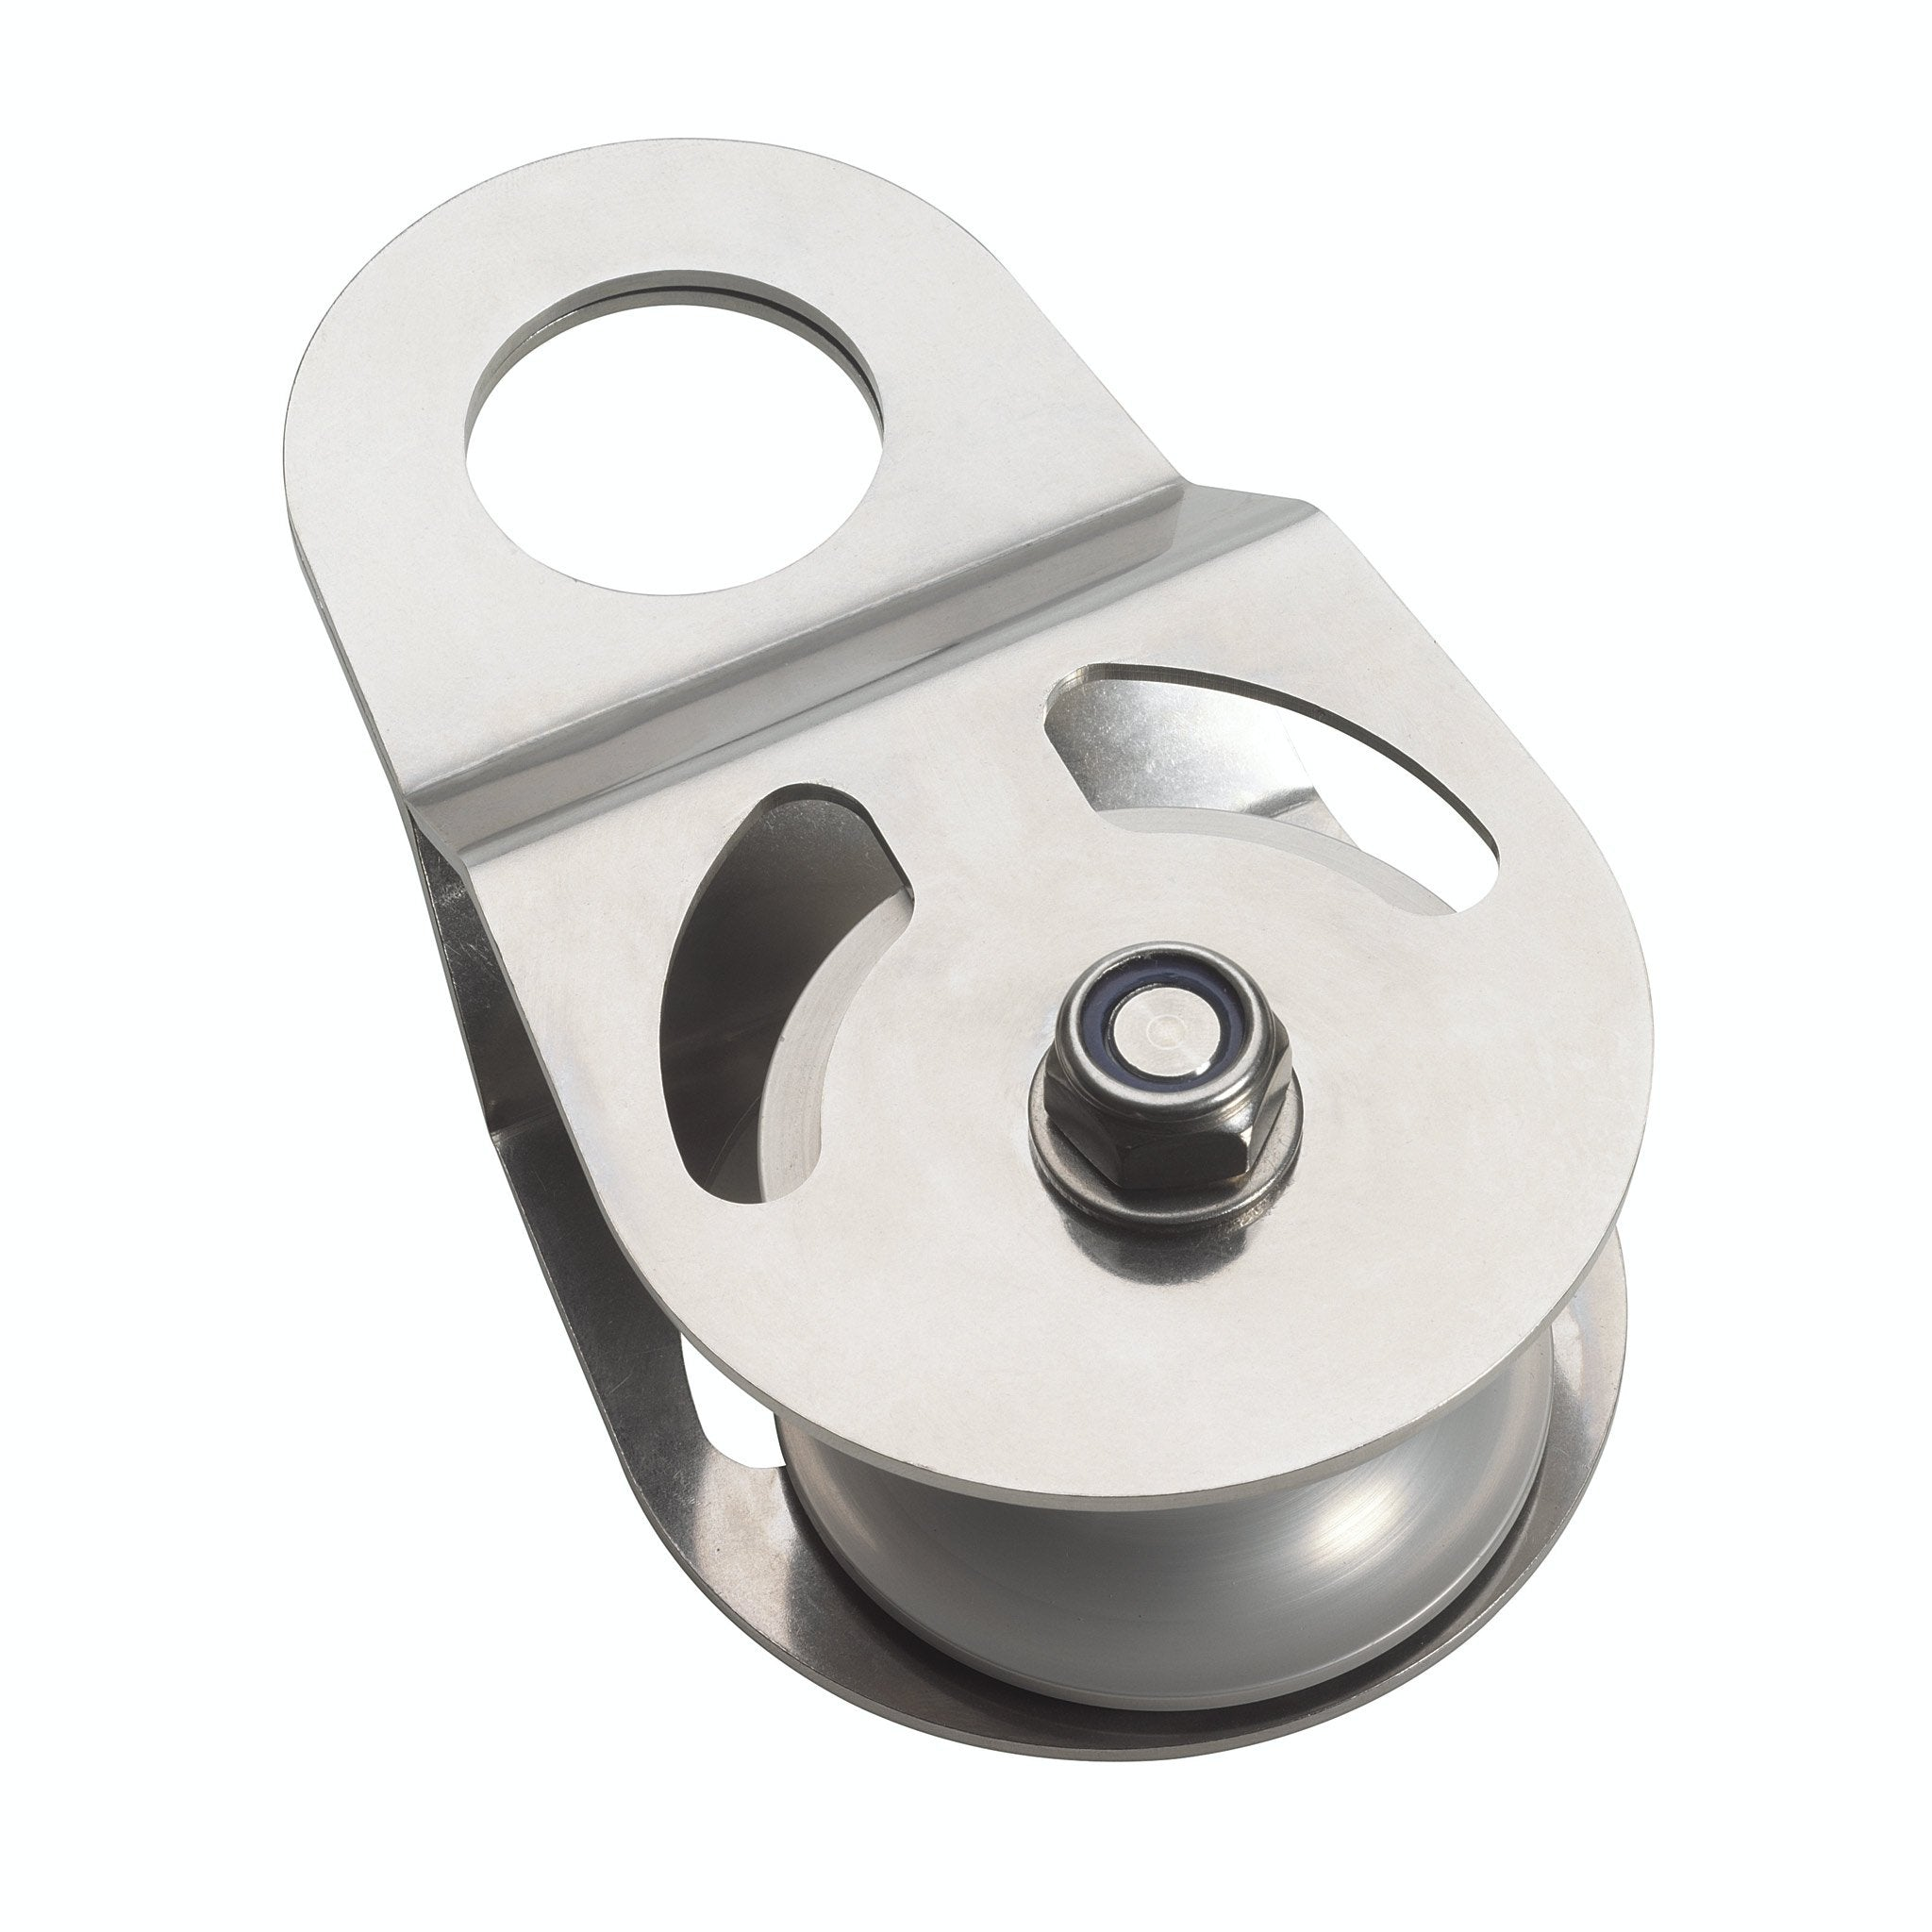 Big Block 32 - Swing Cheek Snatch Block for Large Diameter Ropes up to 32 mm - Arthur Beale